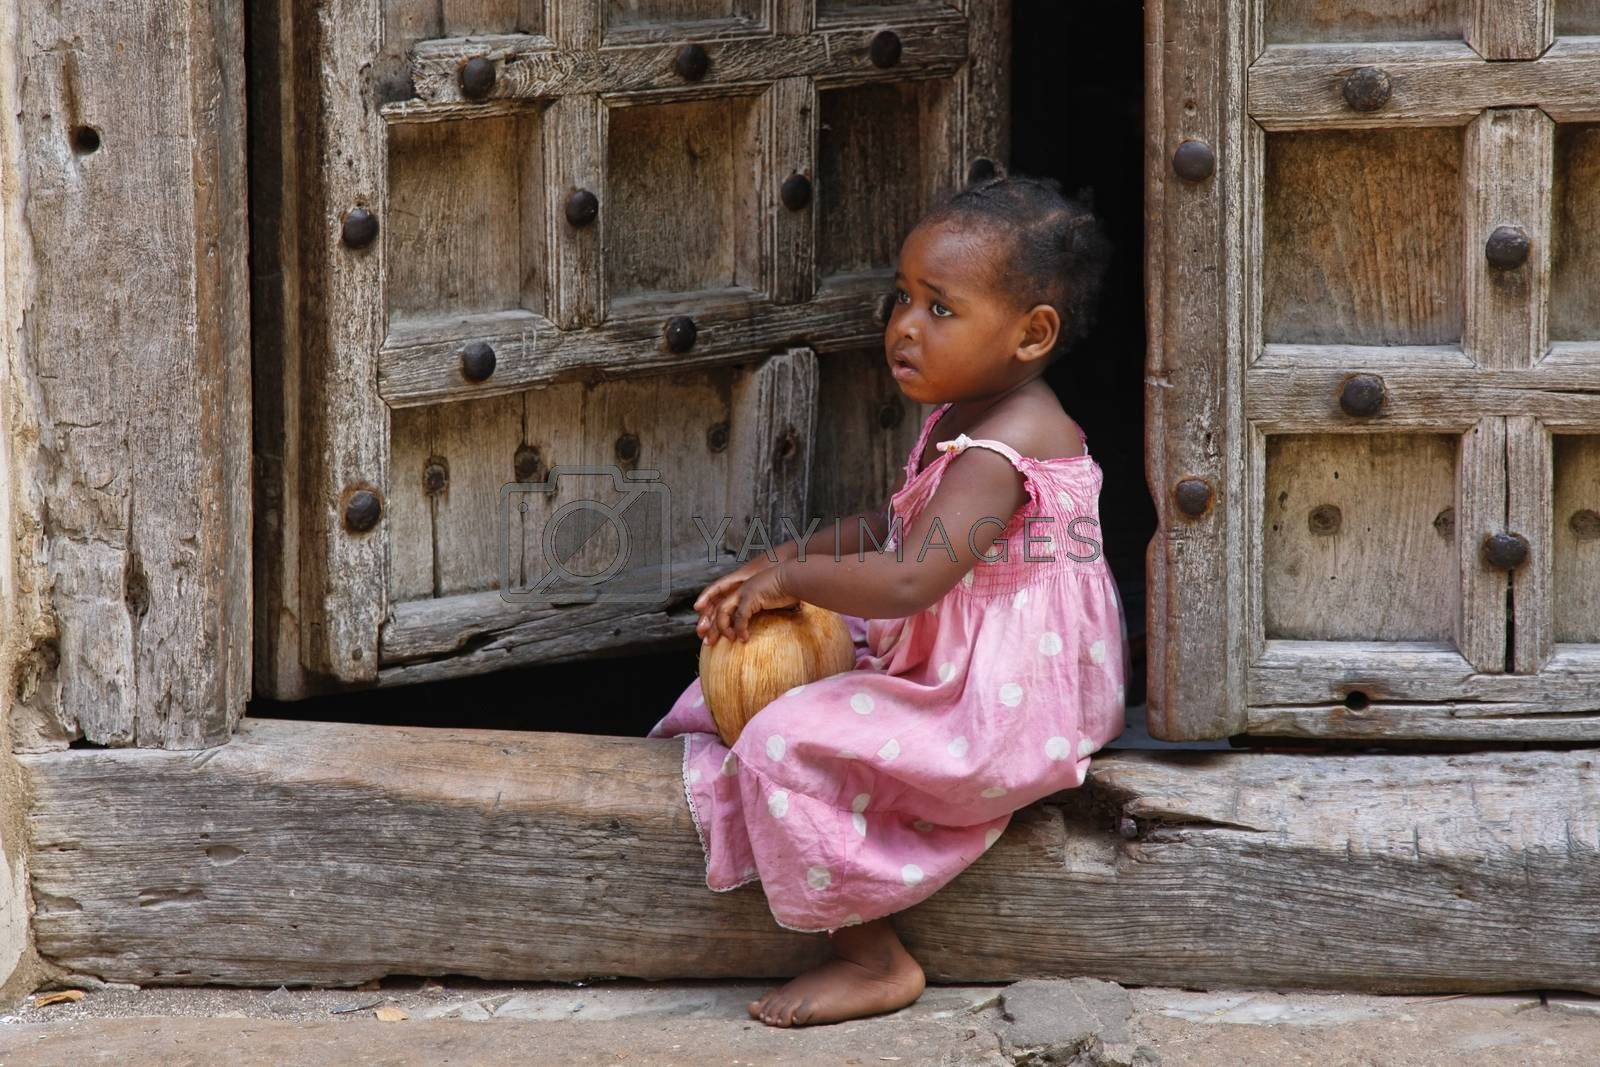 Stone Town, Tanzania - December 30, 2015: Traditional house with old door and small girl sitting on the street of Stone Town.